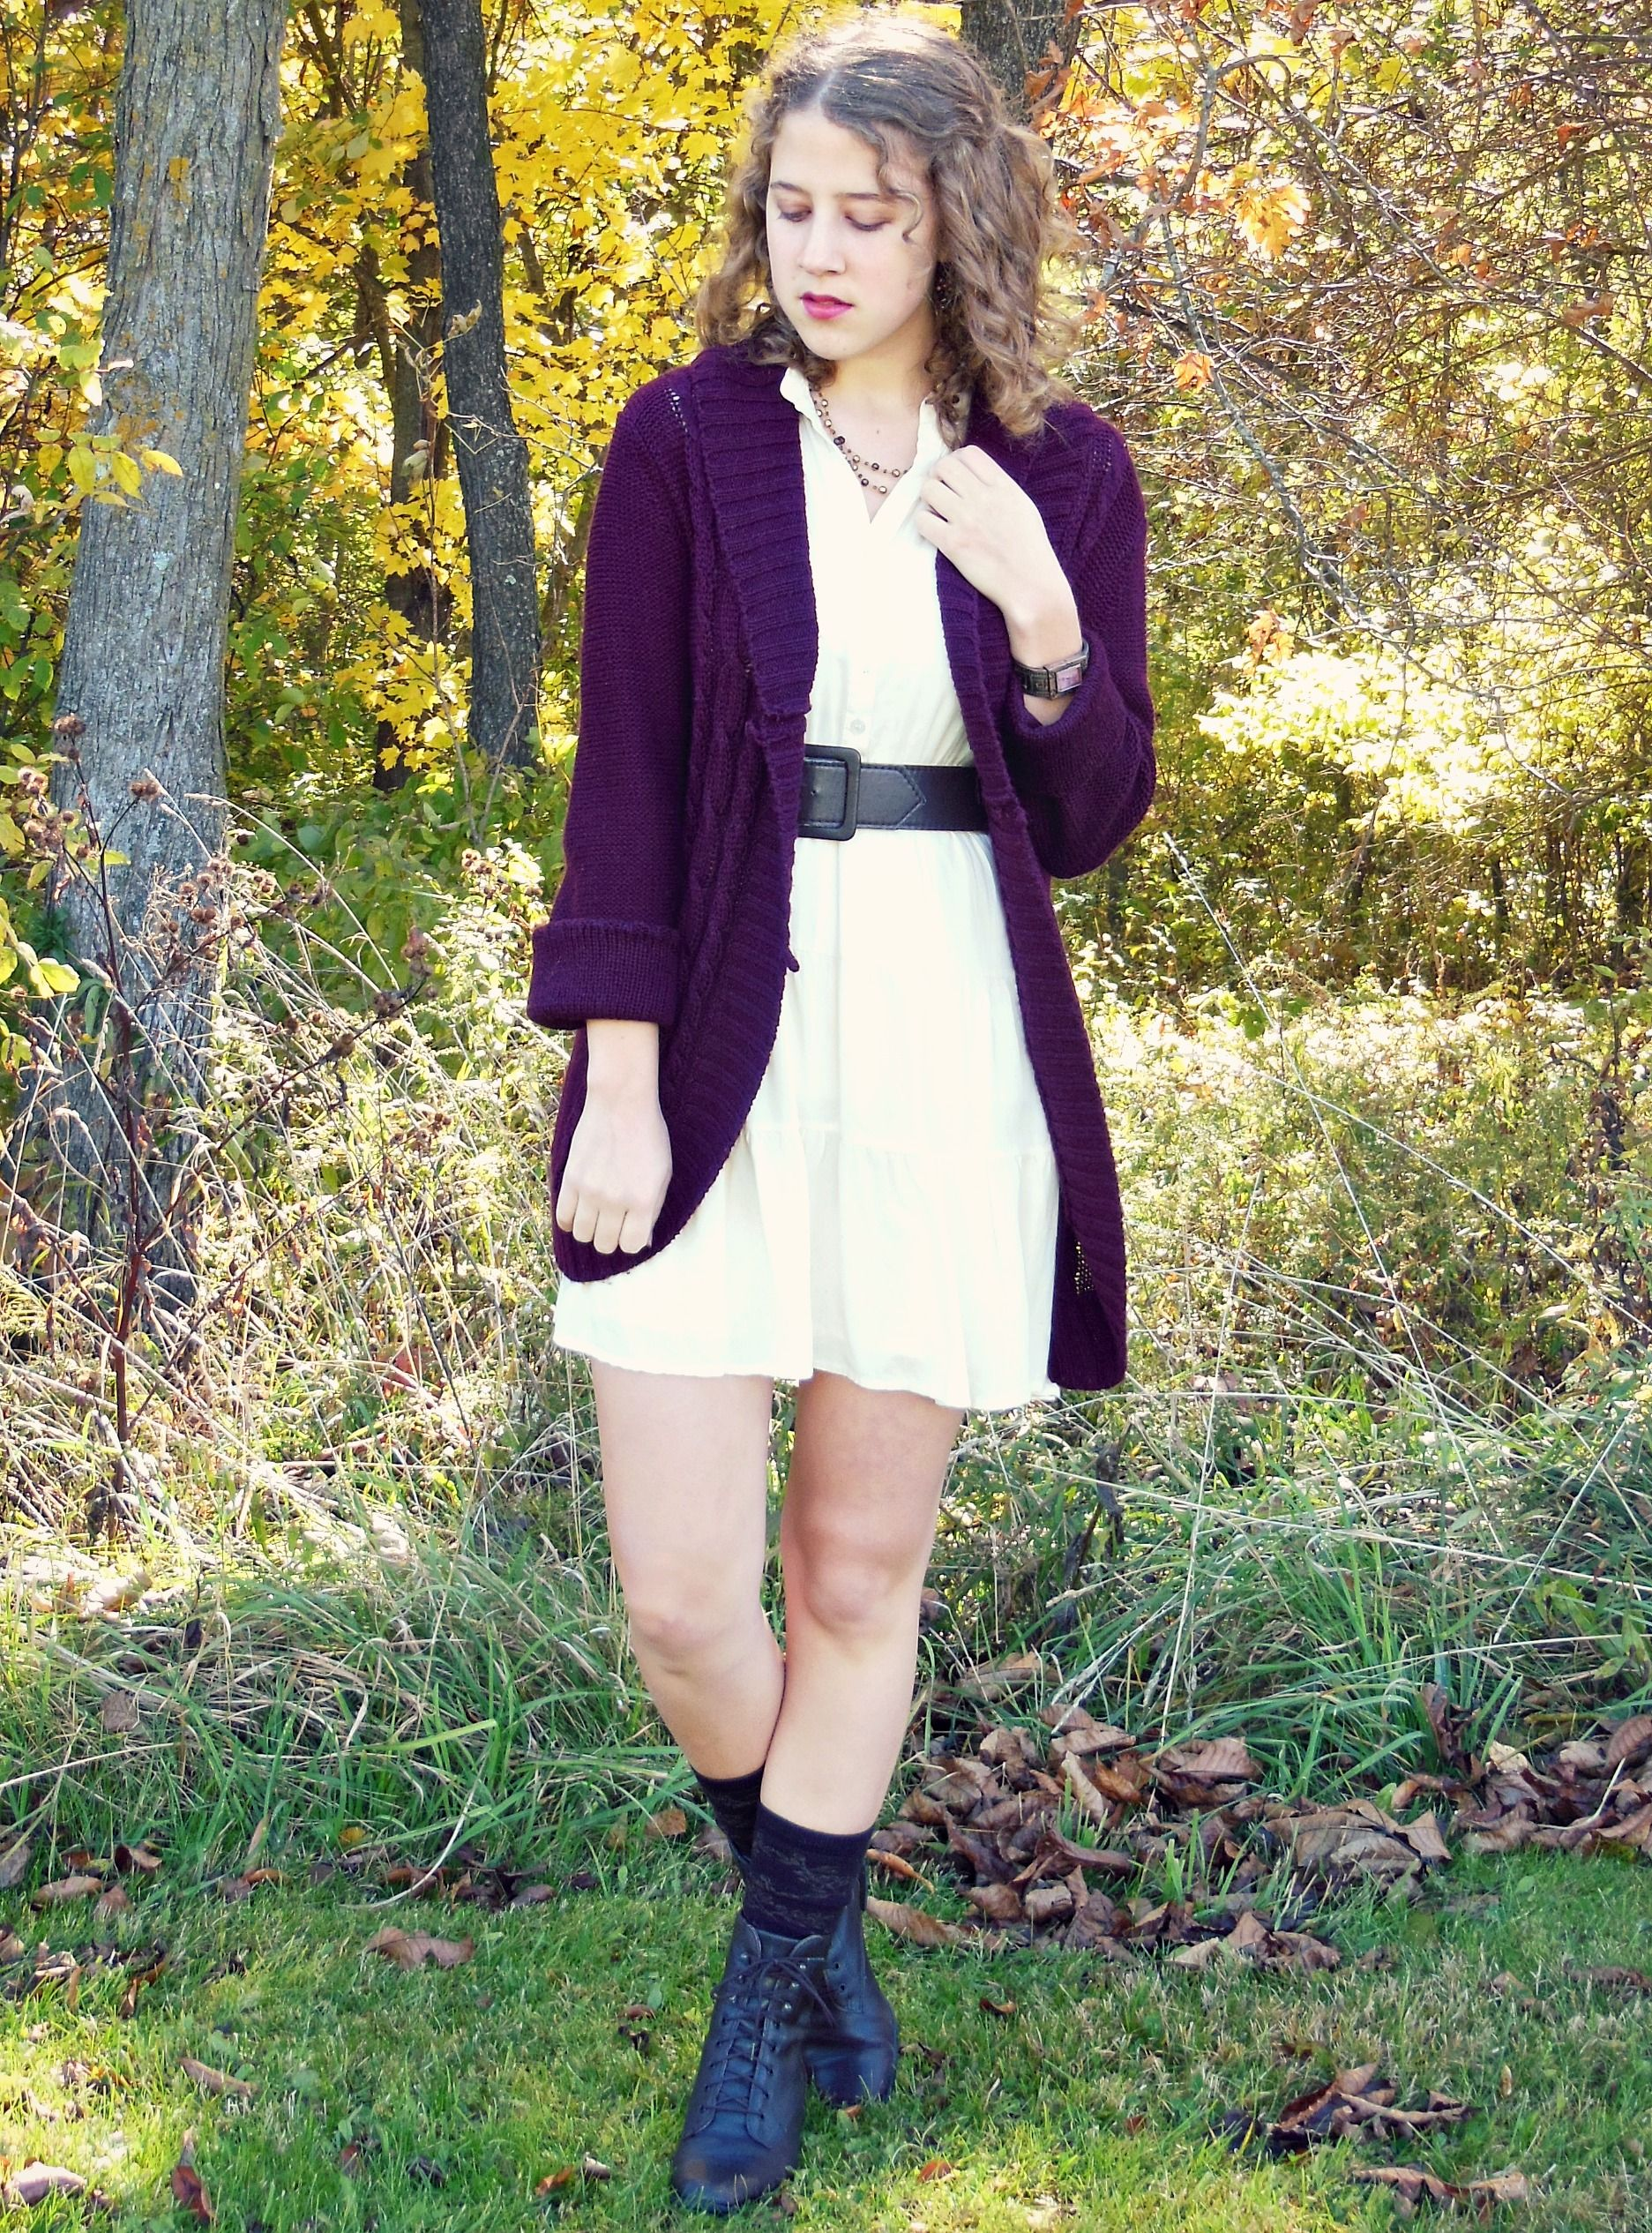 Quintessentially Fall - check out my latest outfit post!